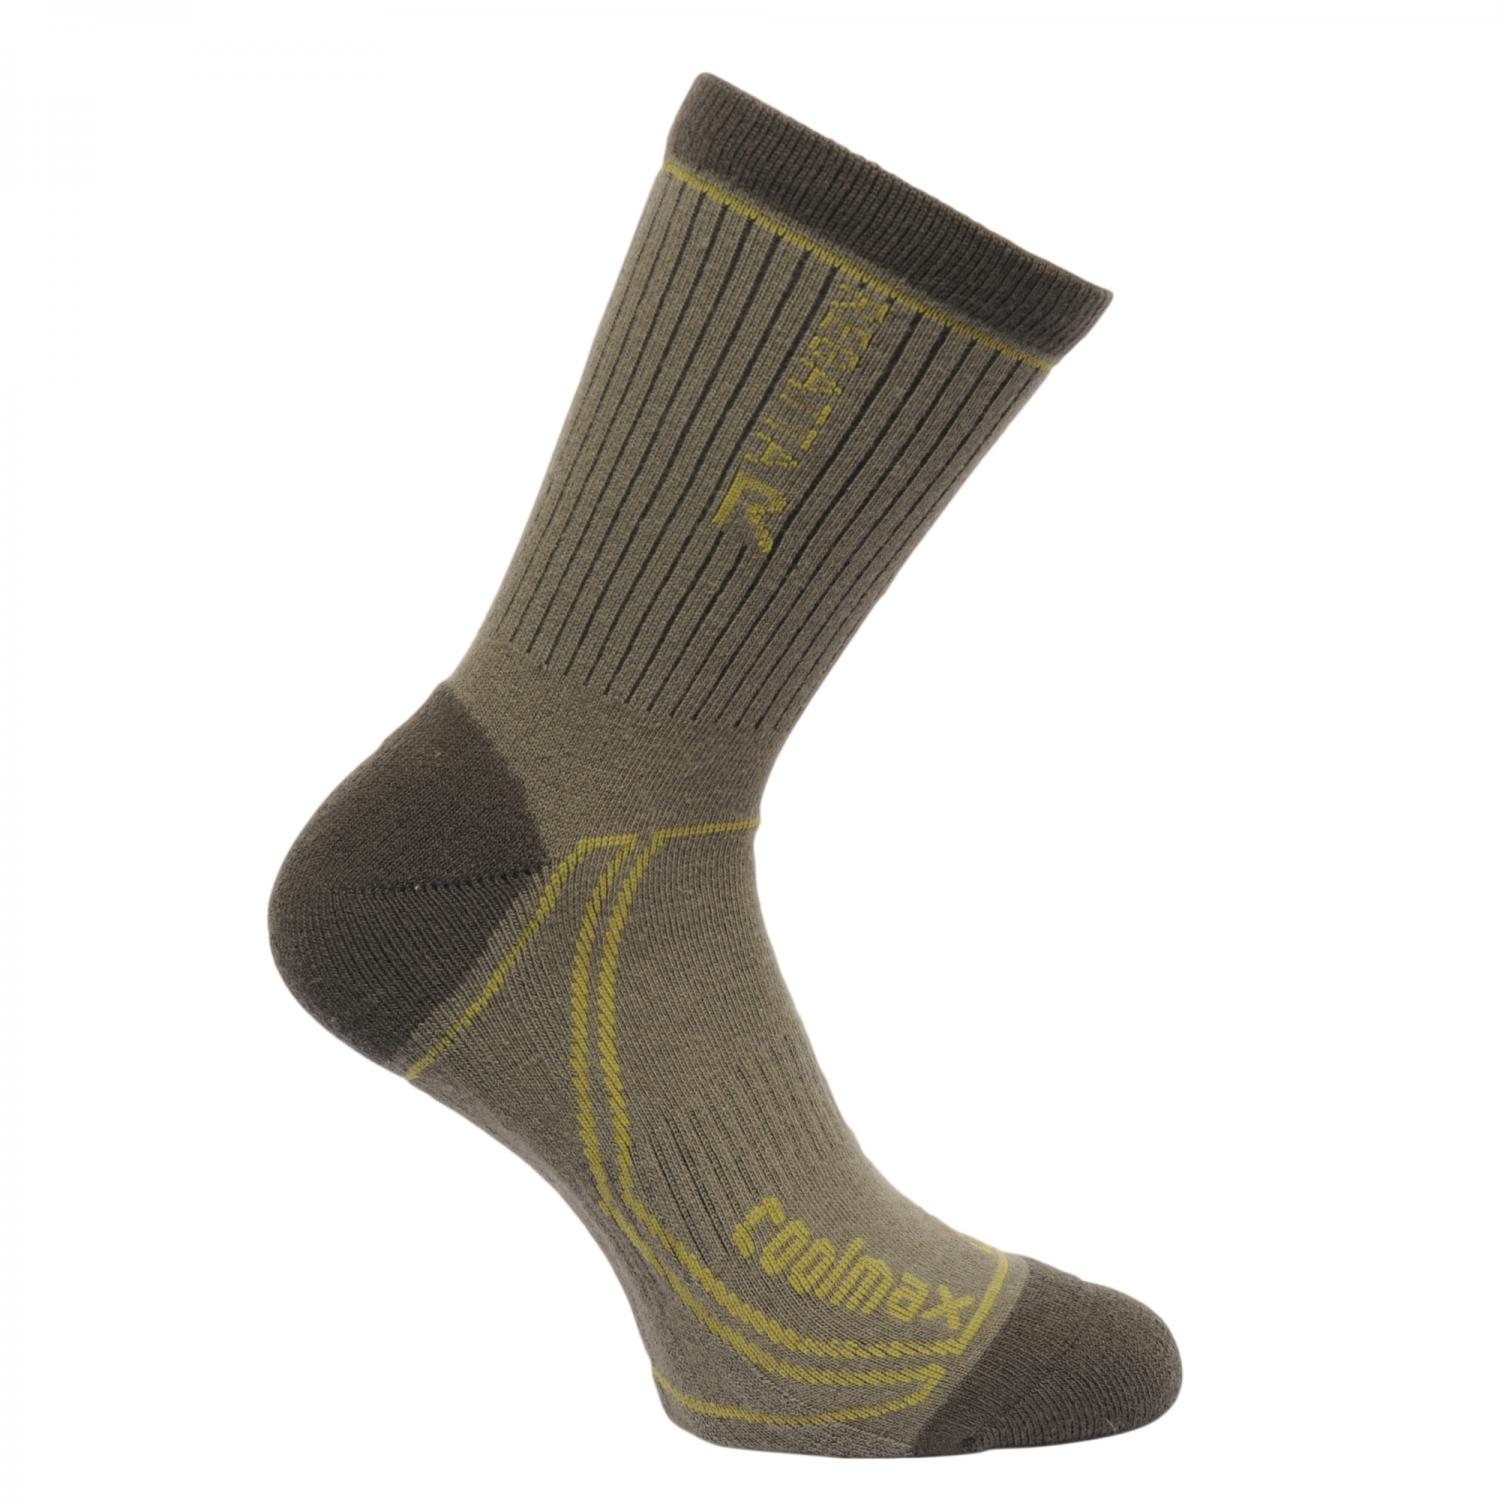 Mens 2 Season Coomax Trek & Trail Sock Dusty Olive Spring